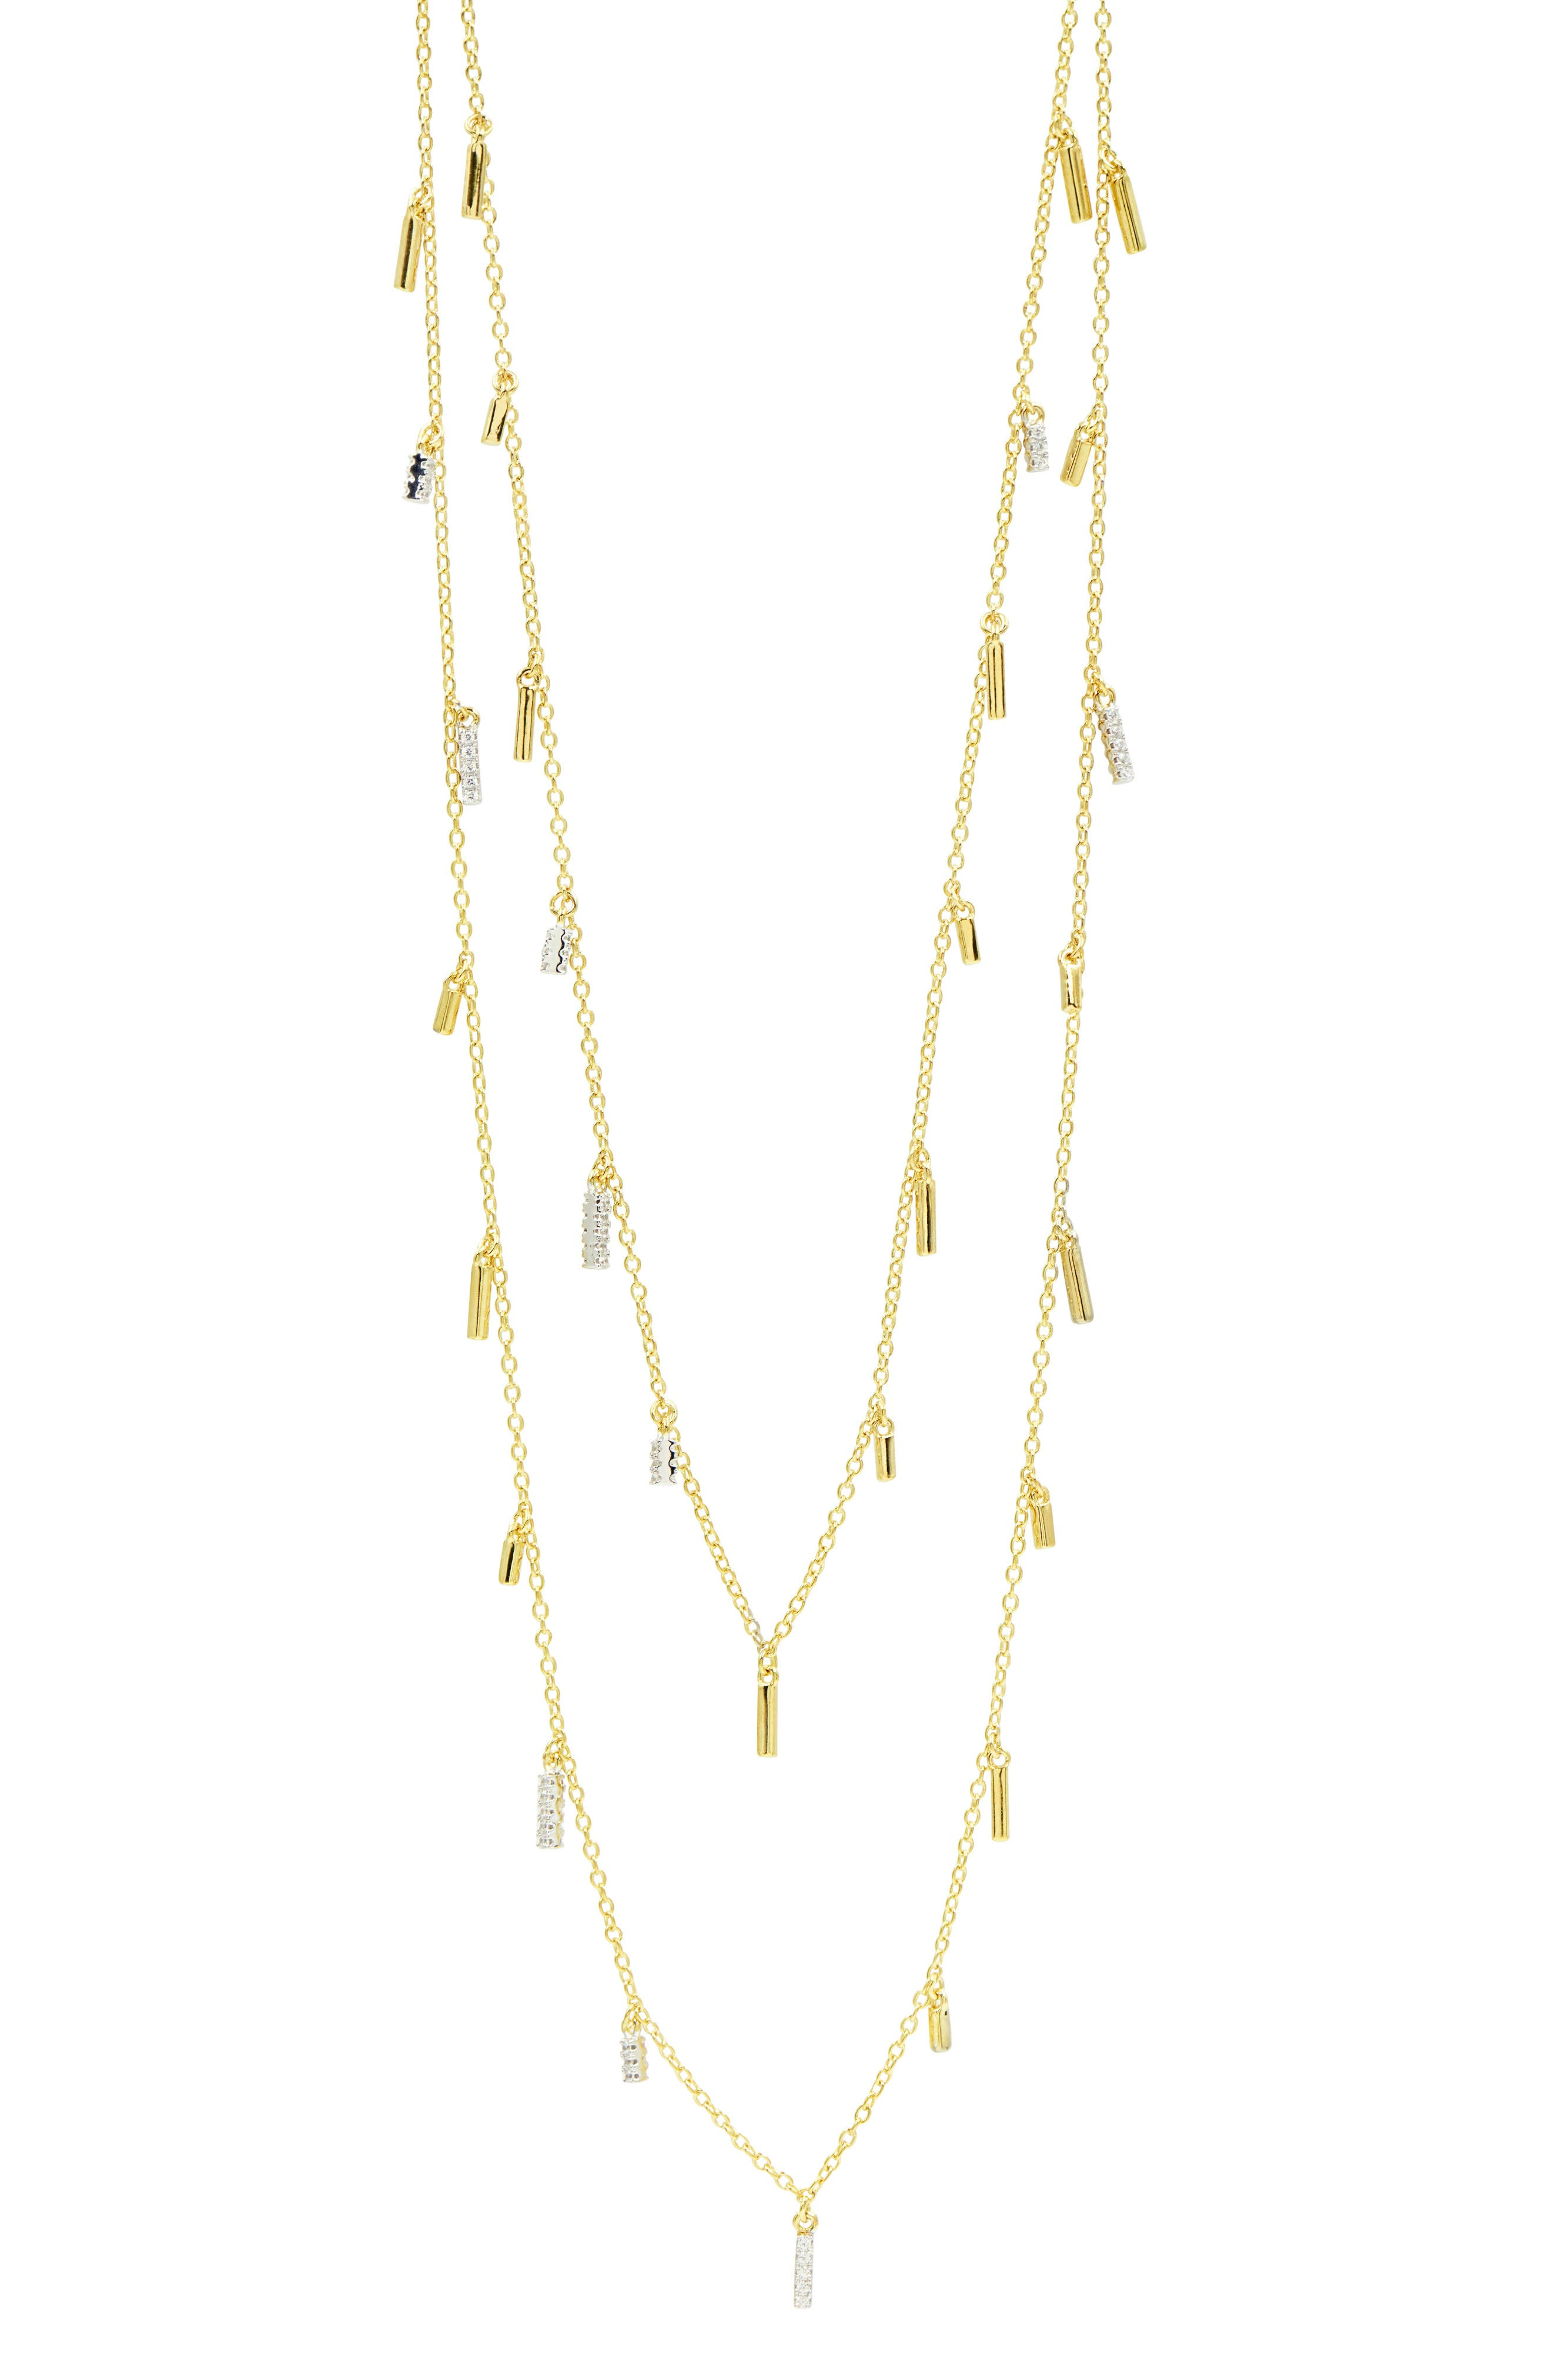 Radiance Droplet Cubic Zirconia Station Necklace,                             Main thumbnail 1, color,                             SILVER/ GOLD